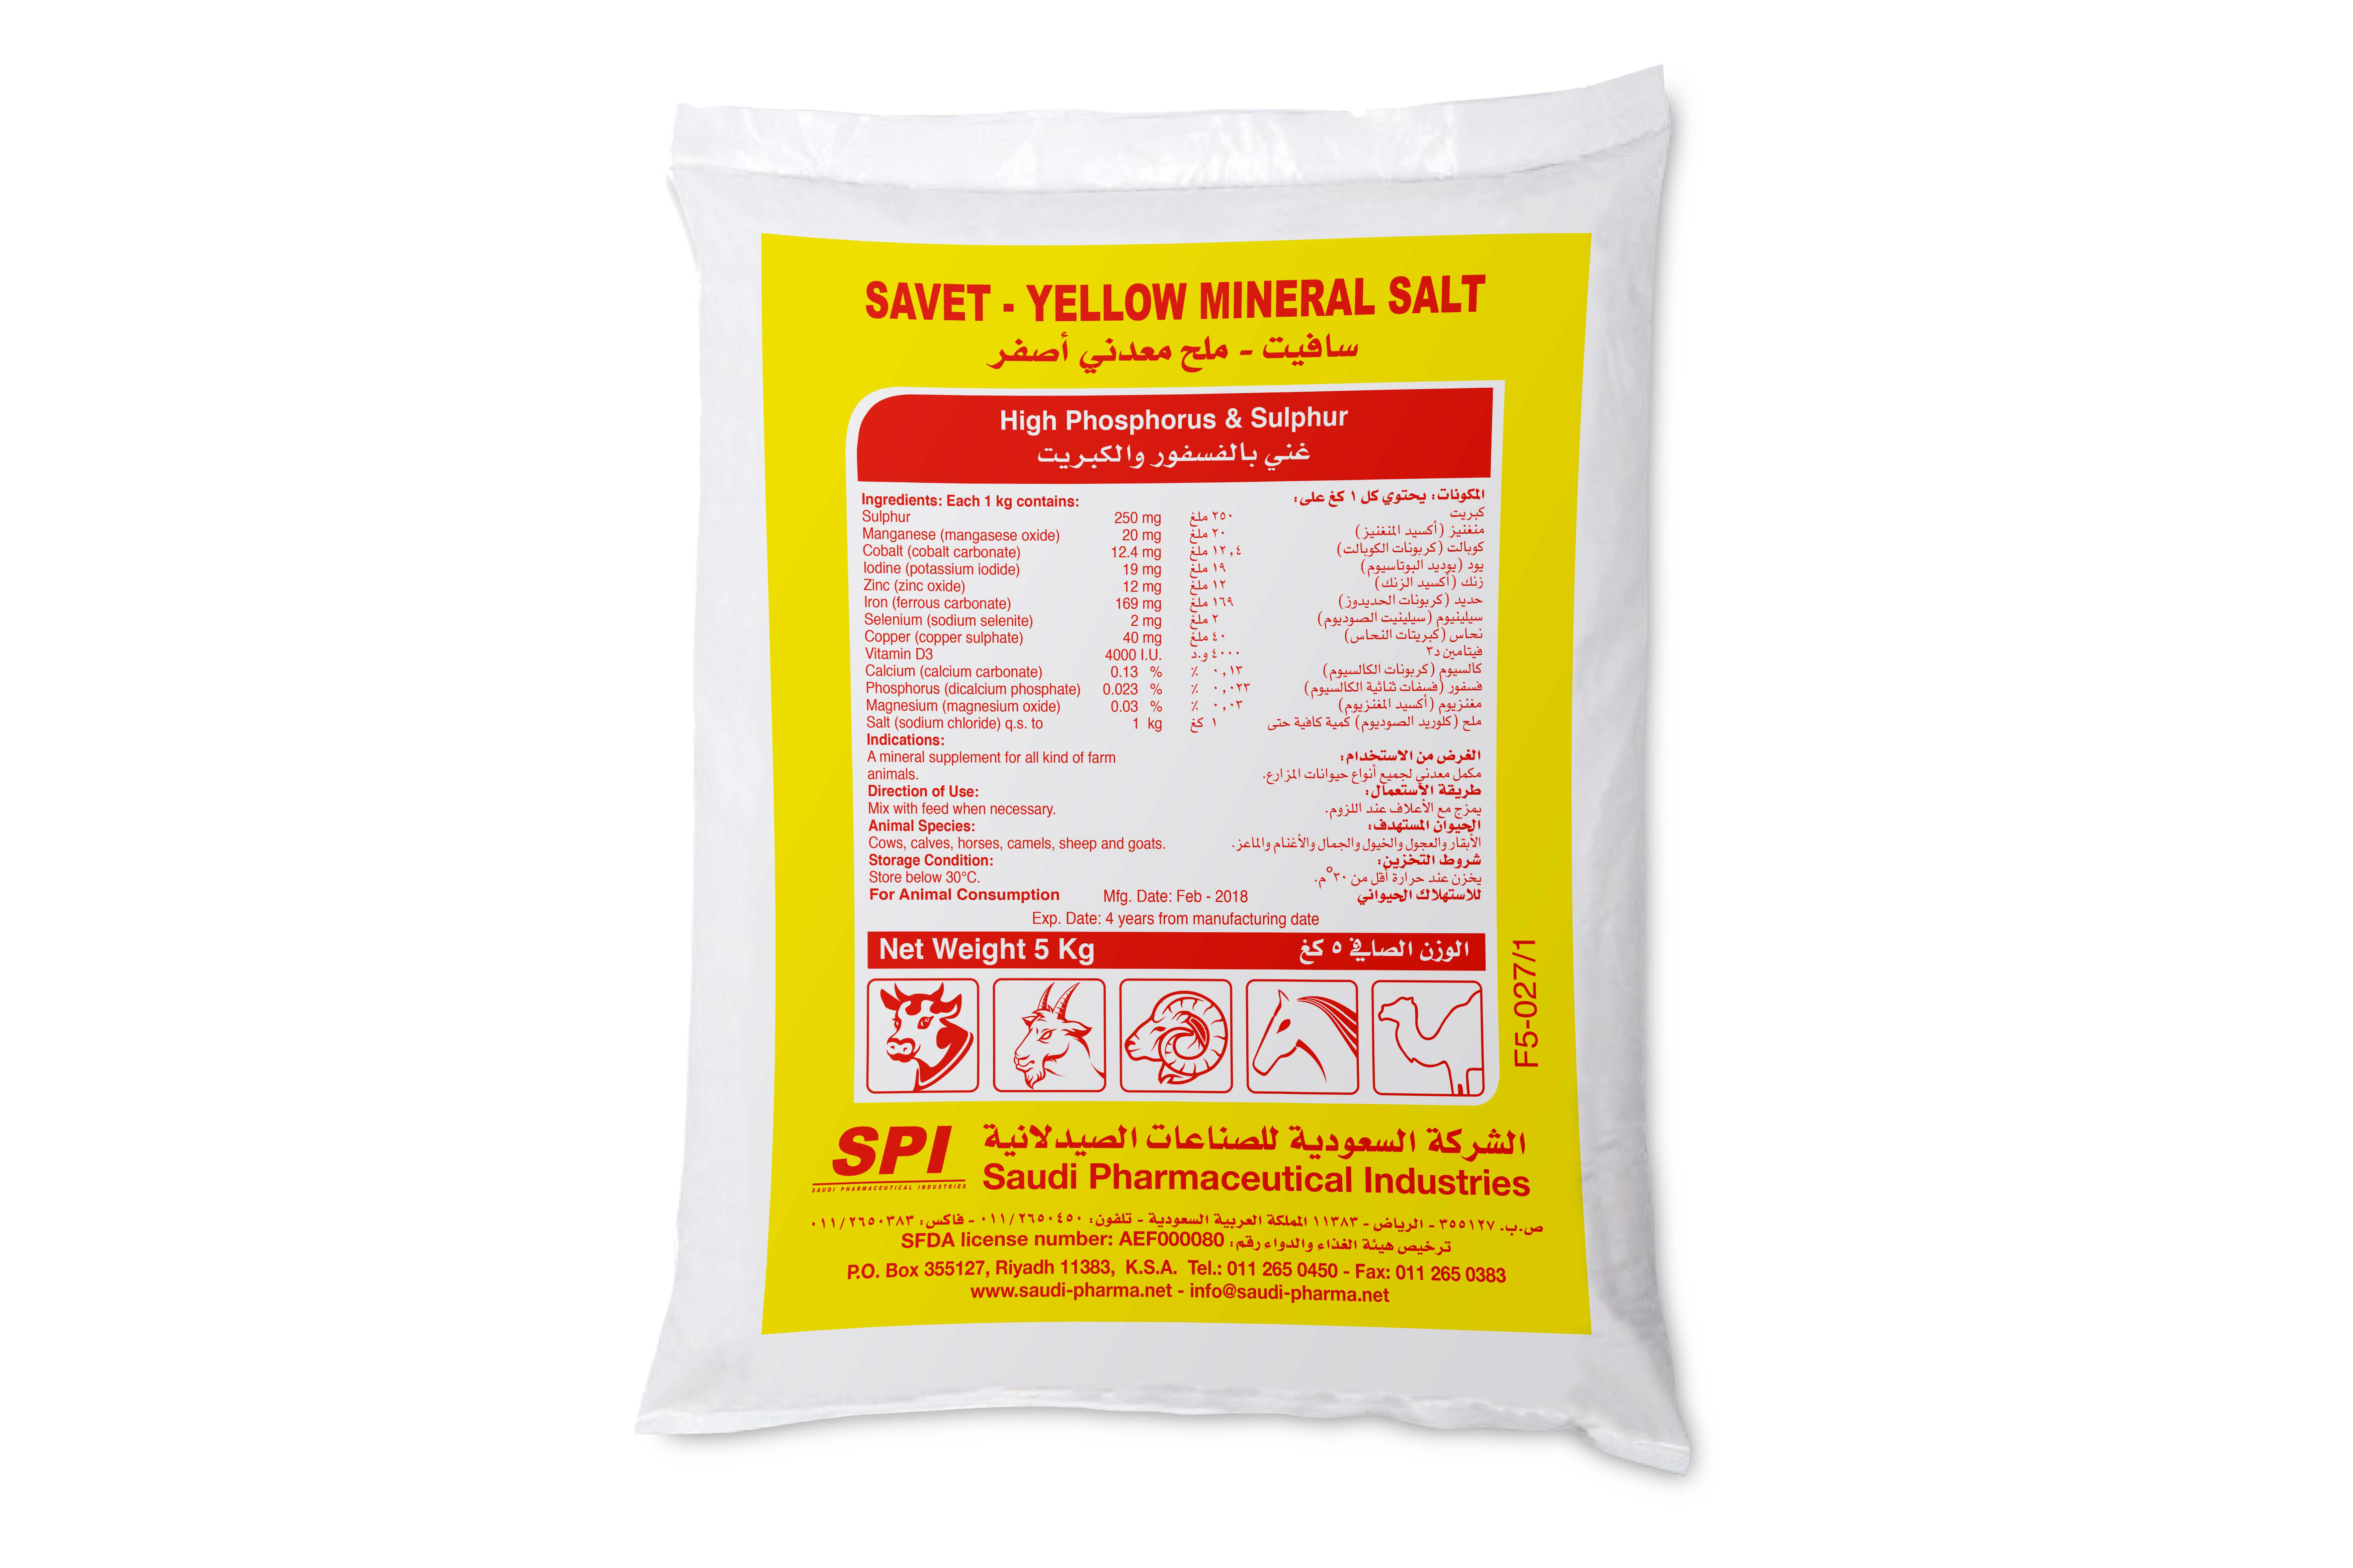 SAVET-YELLOW MINERAL SALT 5kg